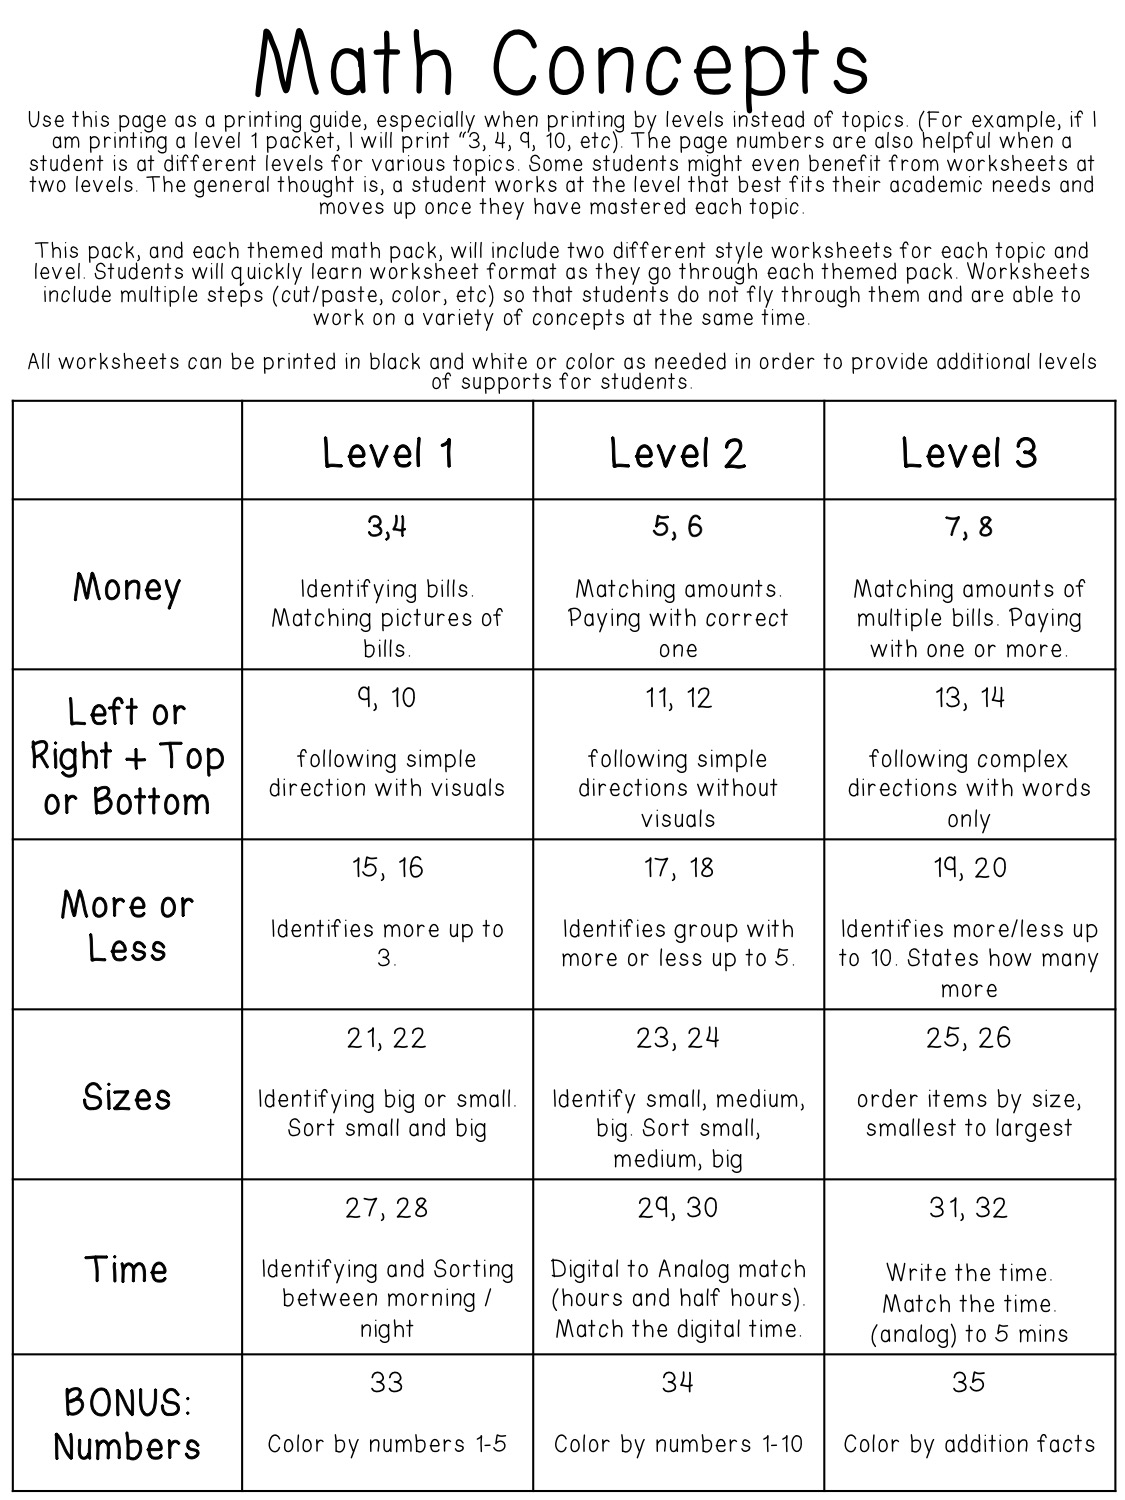 Worksheets Life Skill Worksheets math life skill worksheets thanksgiving themed breezy special ed in my classroom we do a worksheet each day and then activity that corresponds to so are getting h